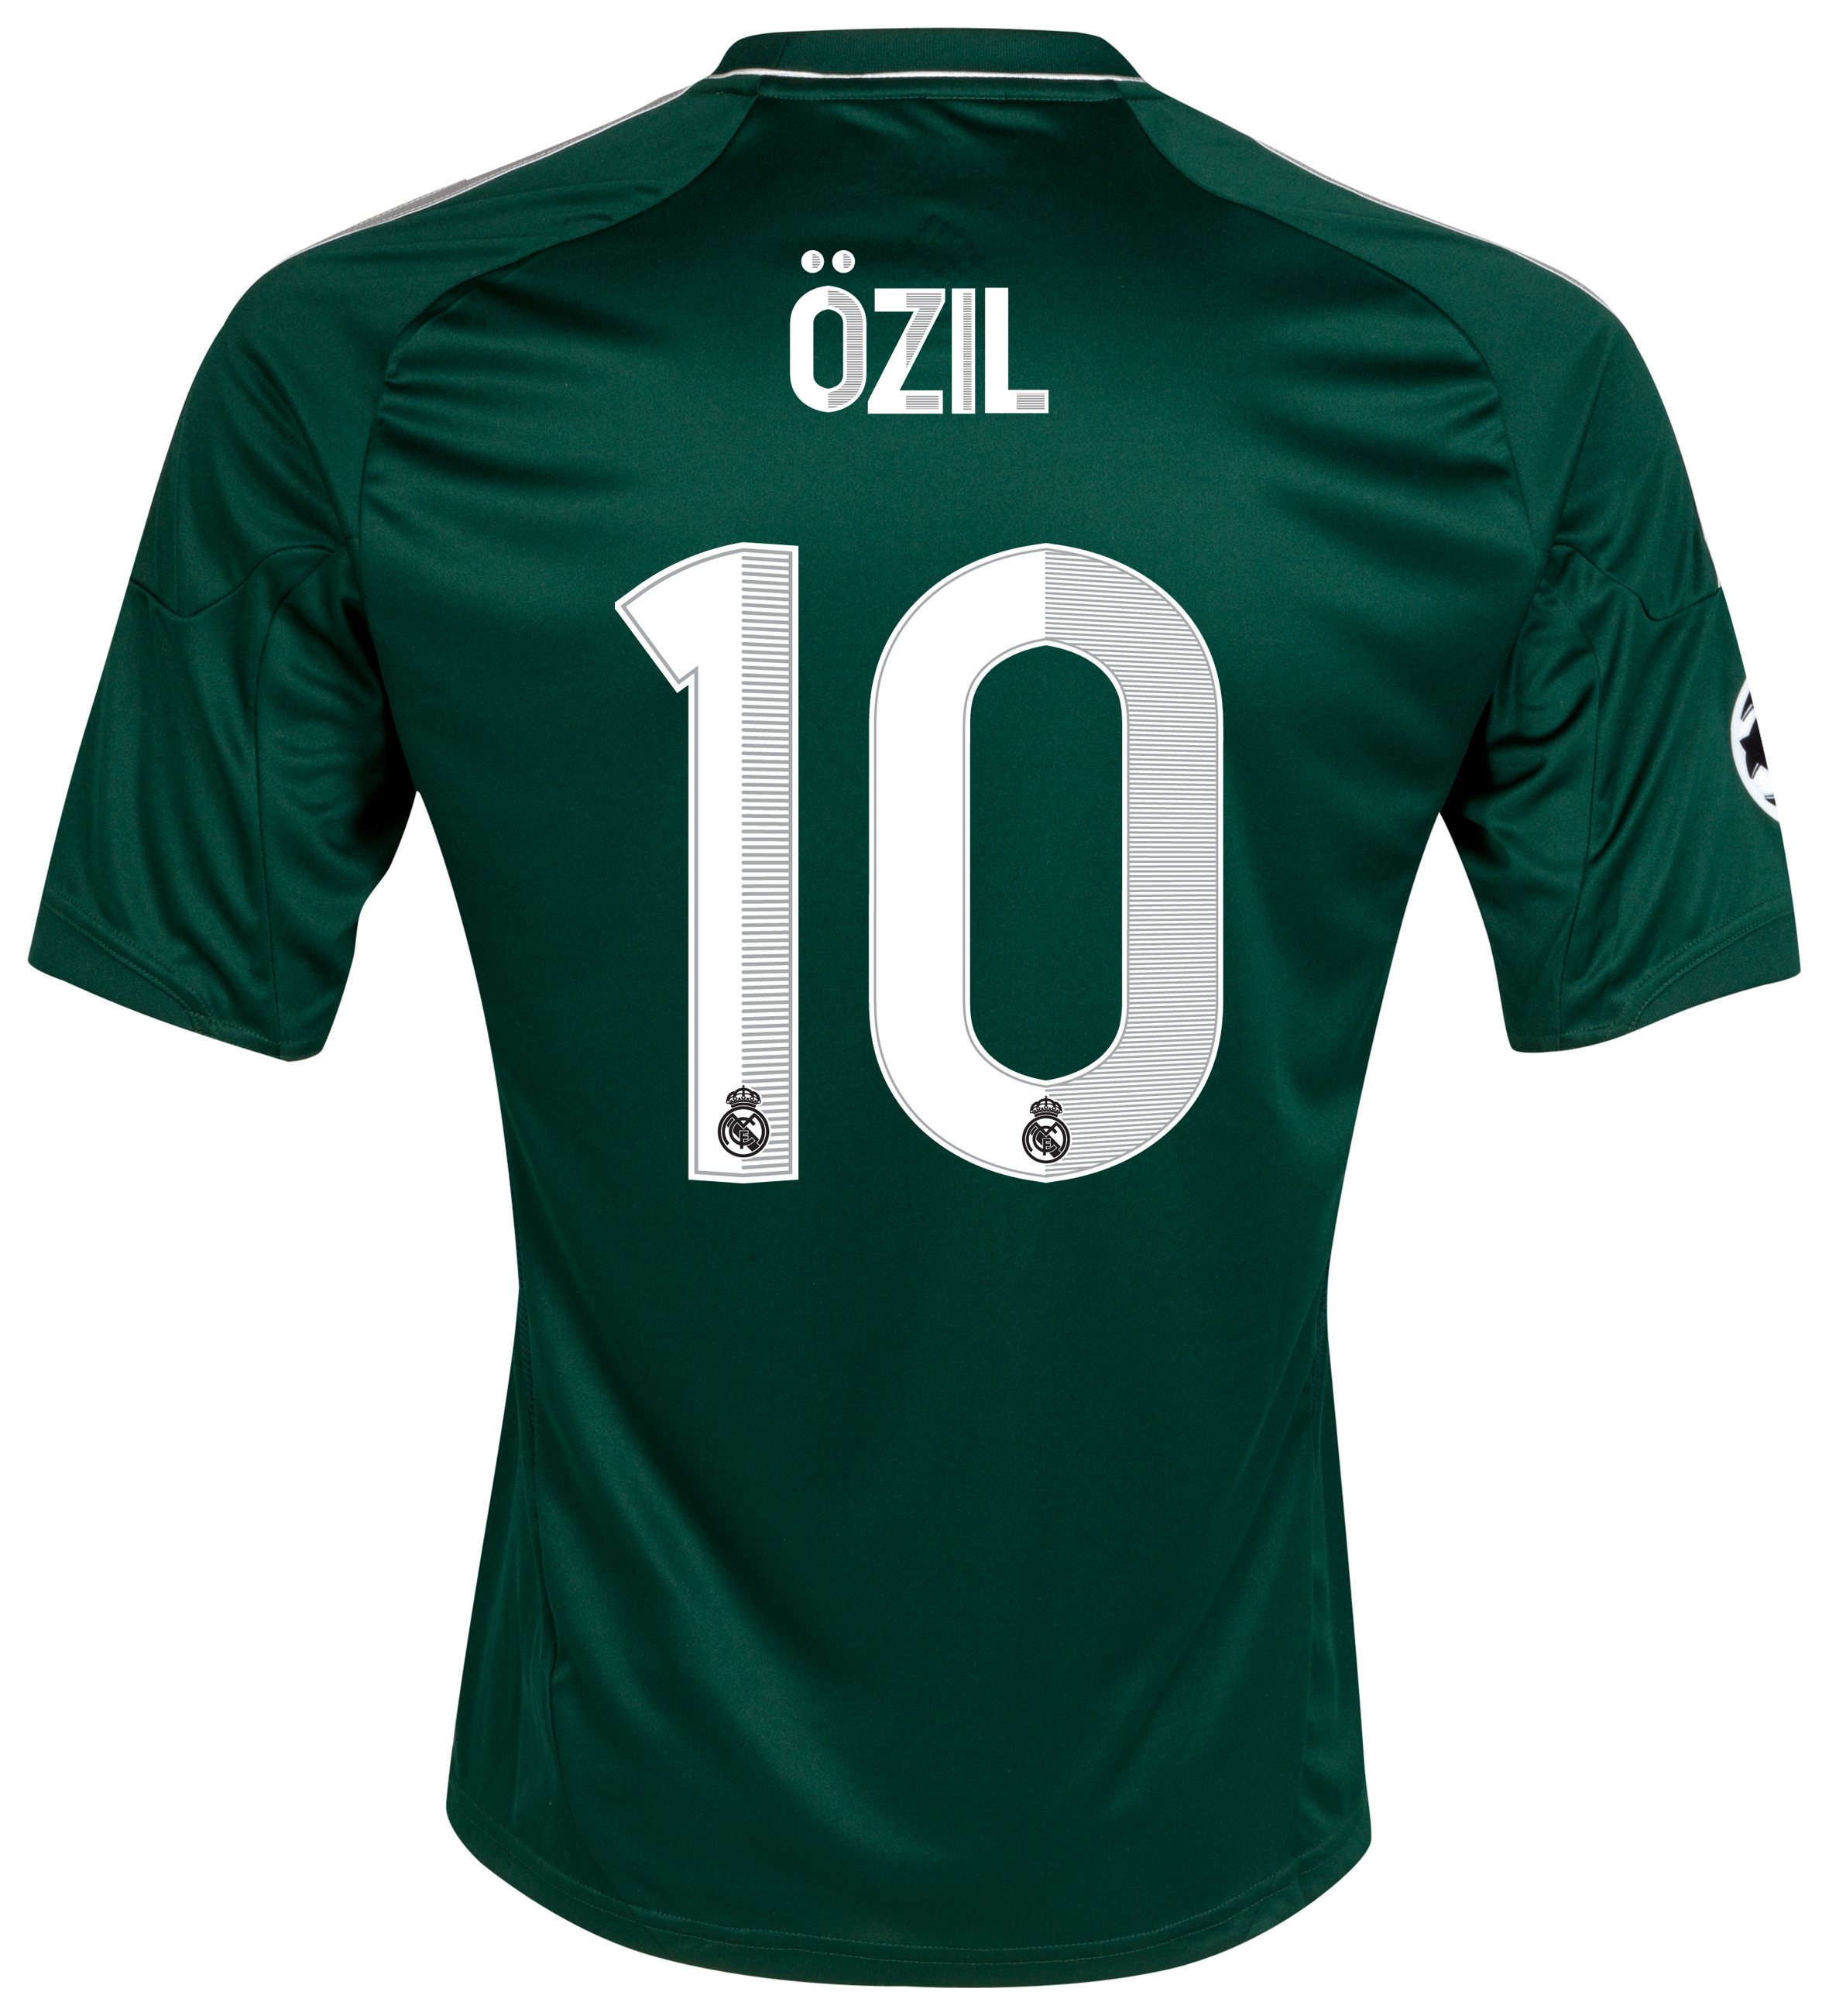 Real Madrid UEFA Champions League Third Shirt 2012/13 - Kids with Özil 10 printing